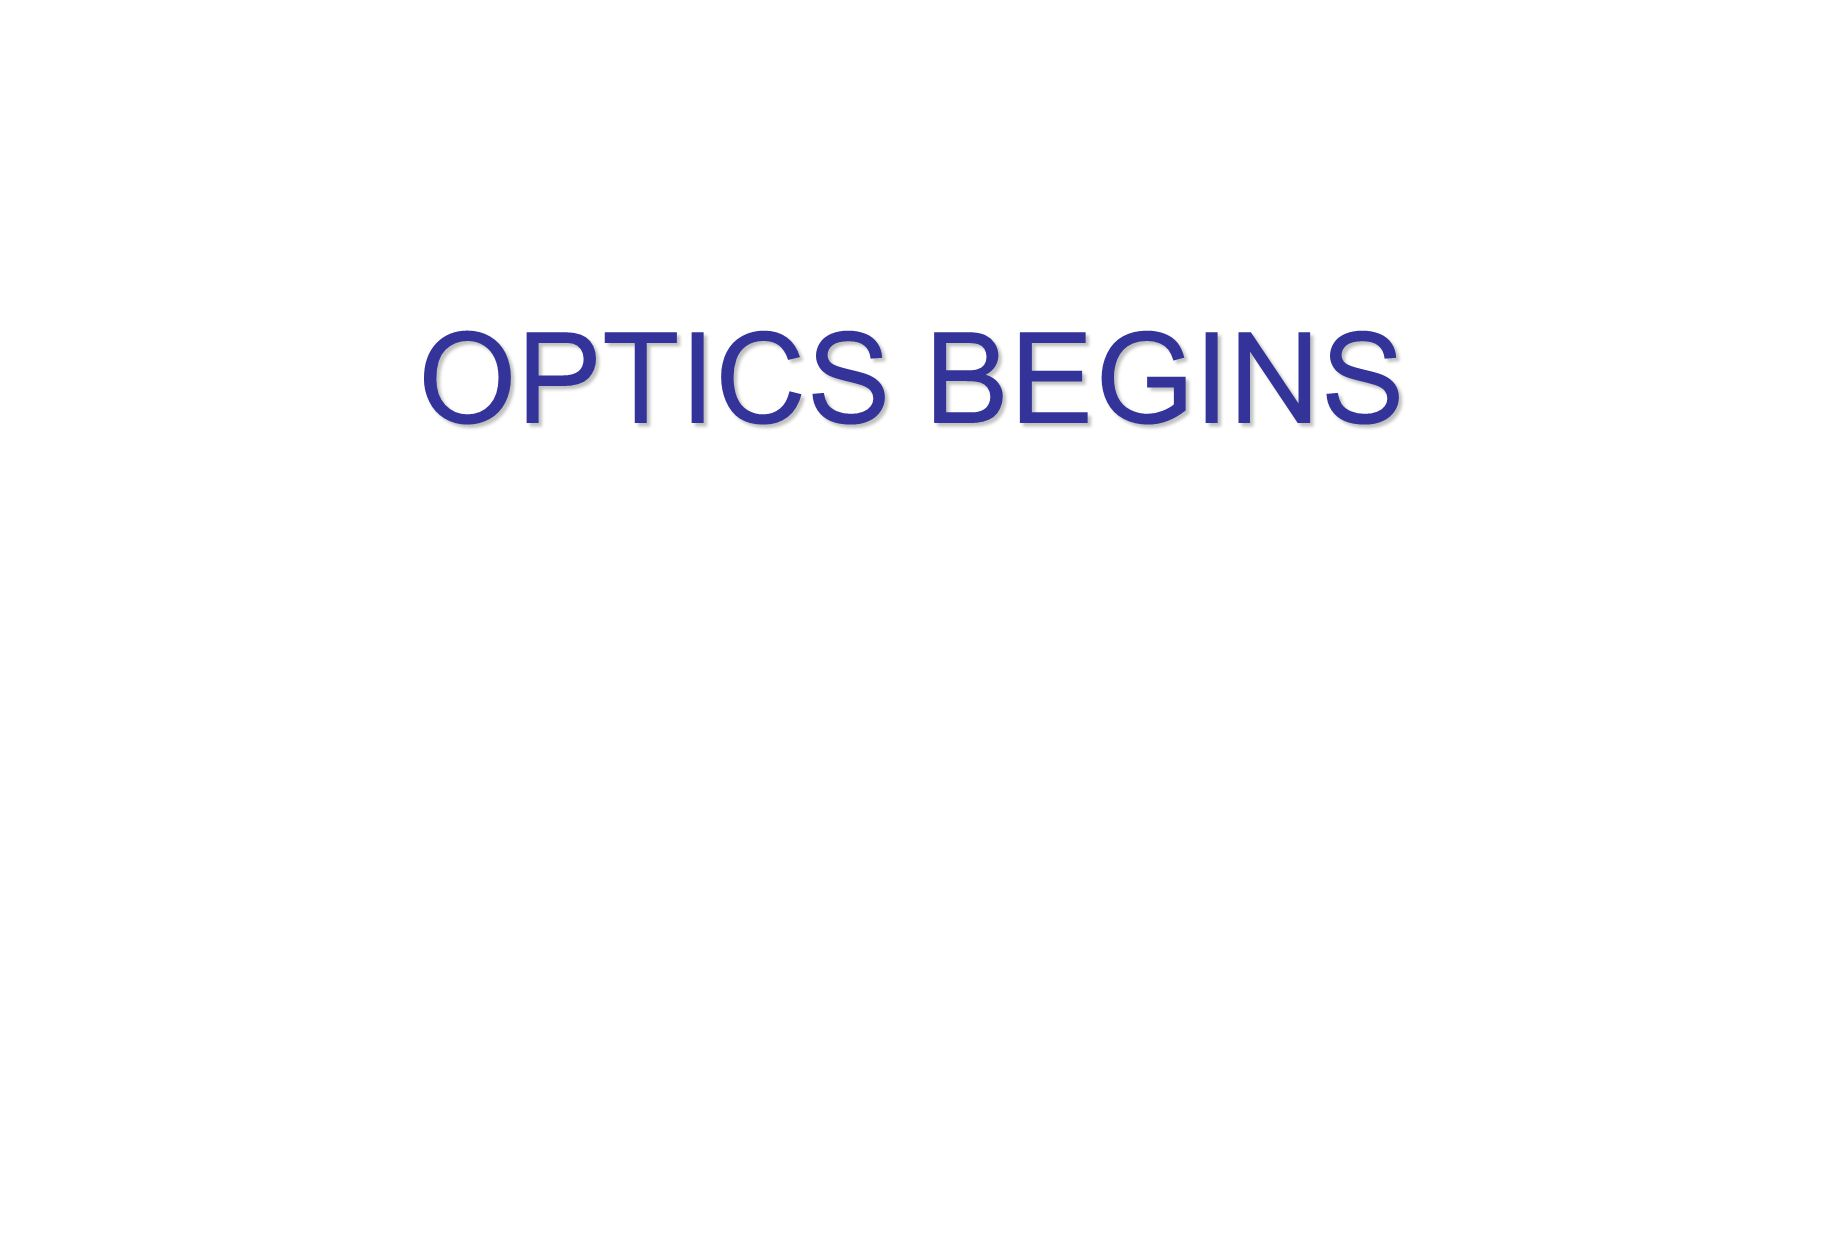 OPTICS BEGINS